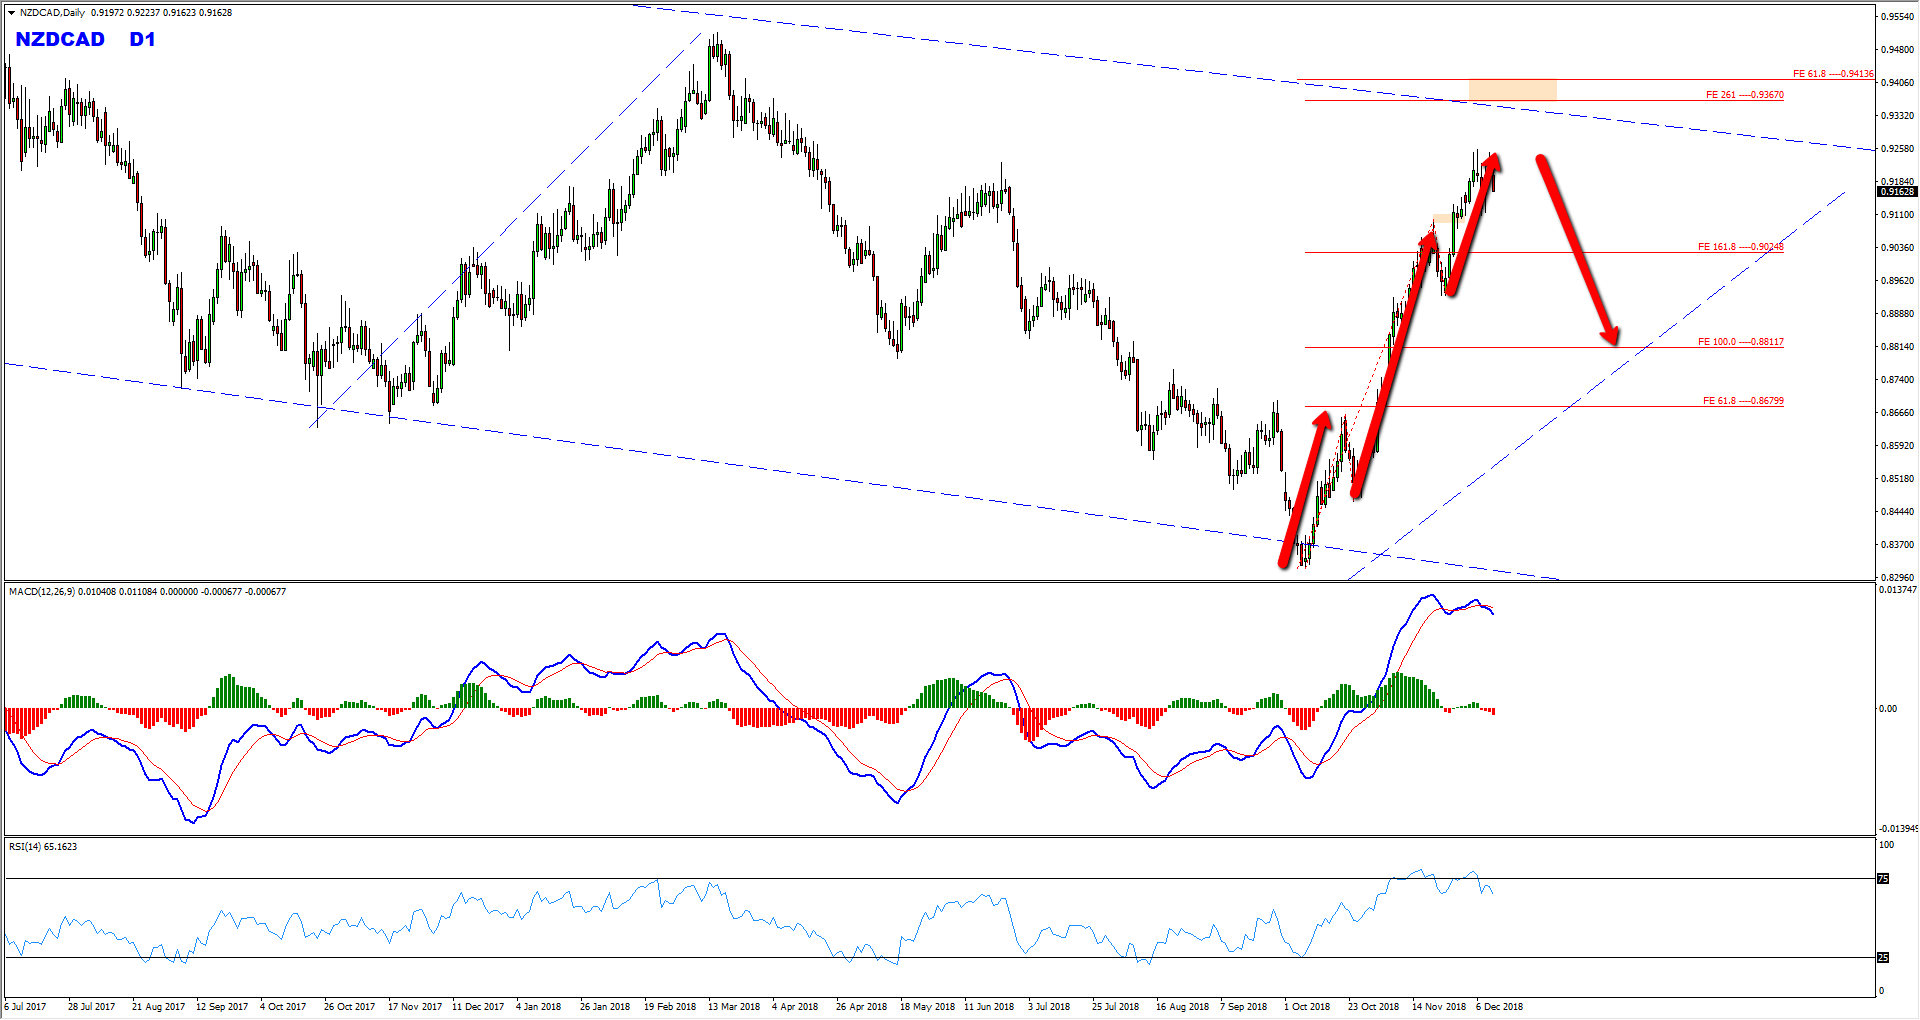 NZDCAD Sell Setup Forming At The Moment